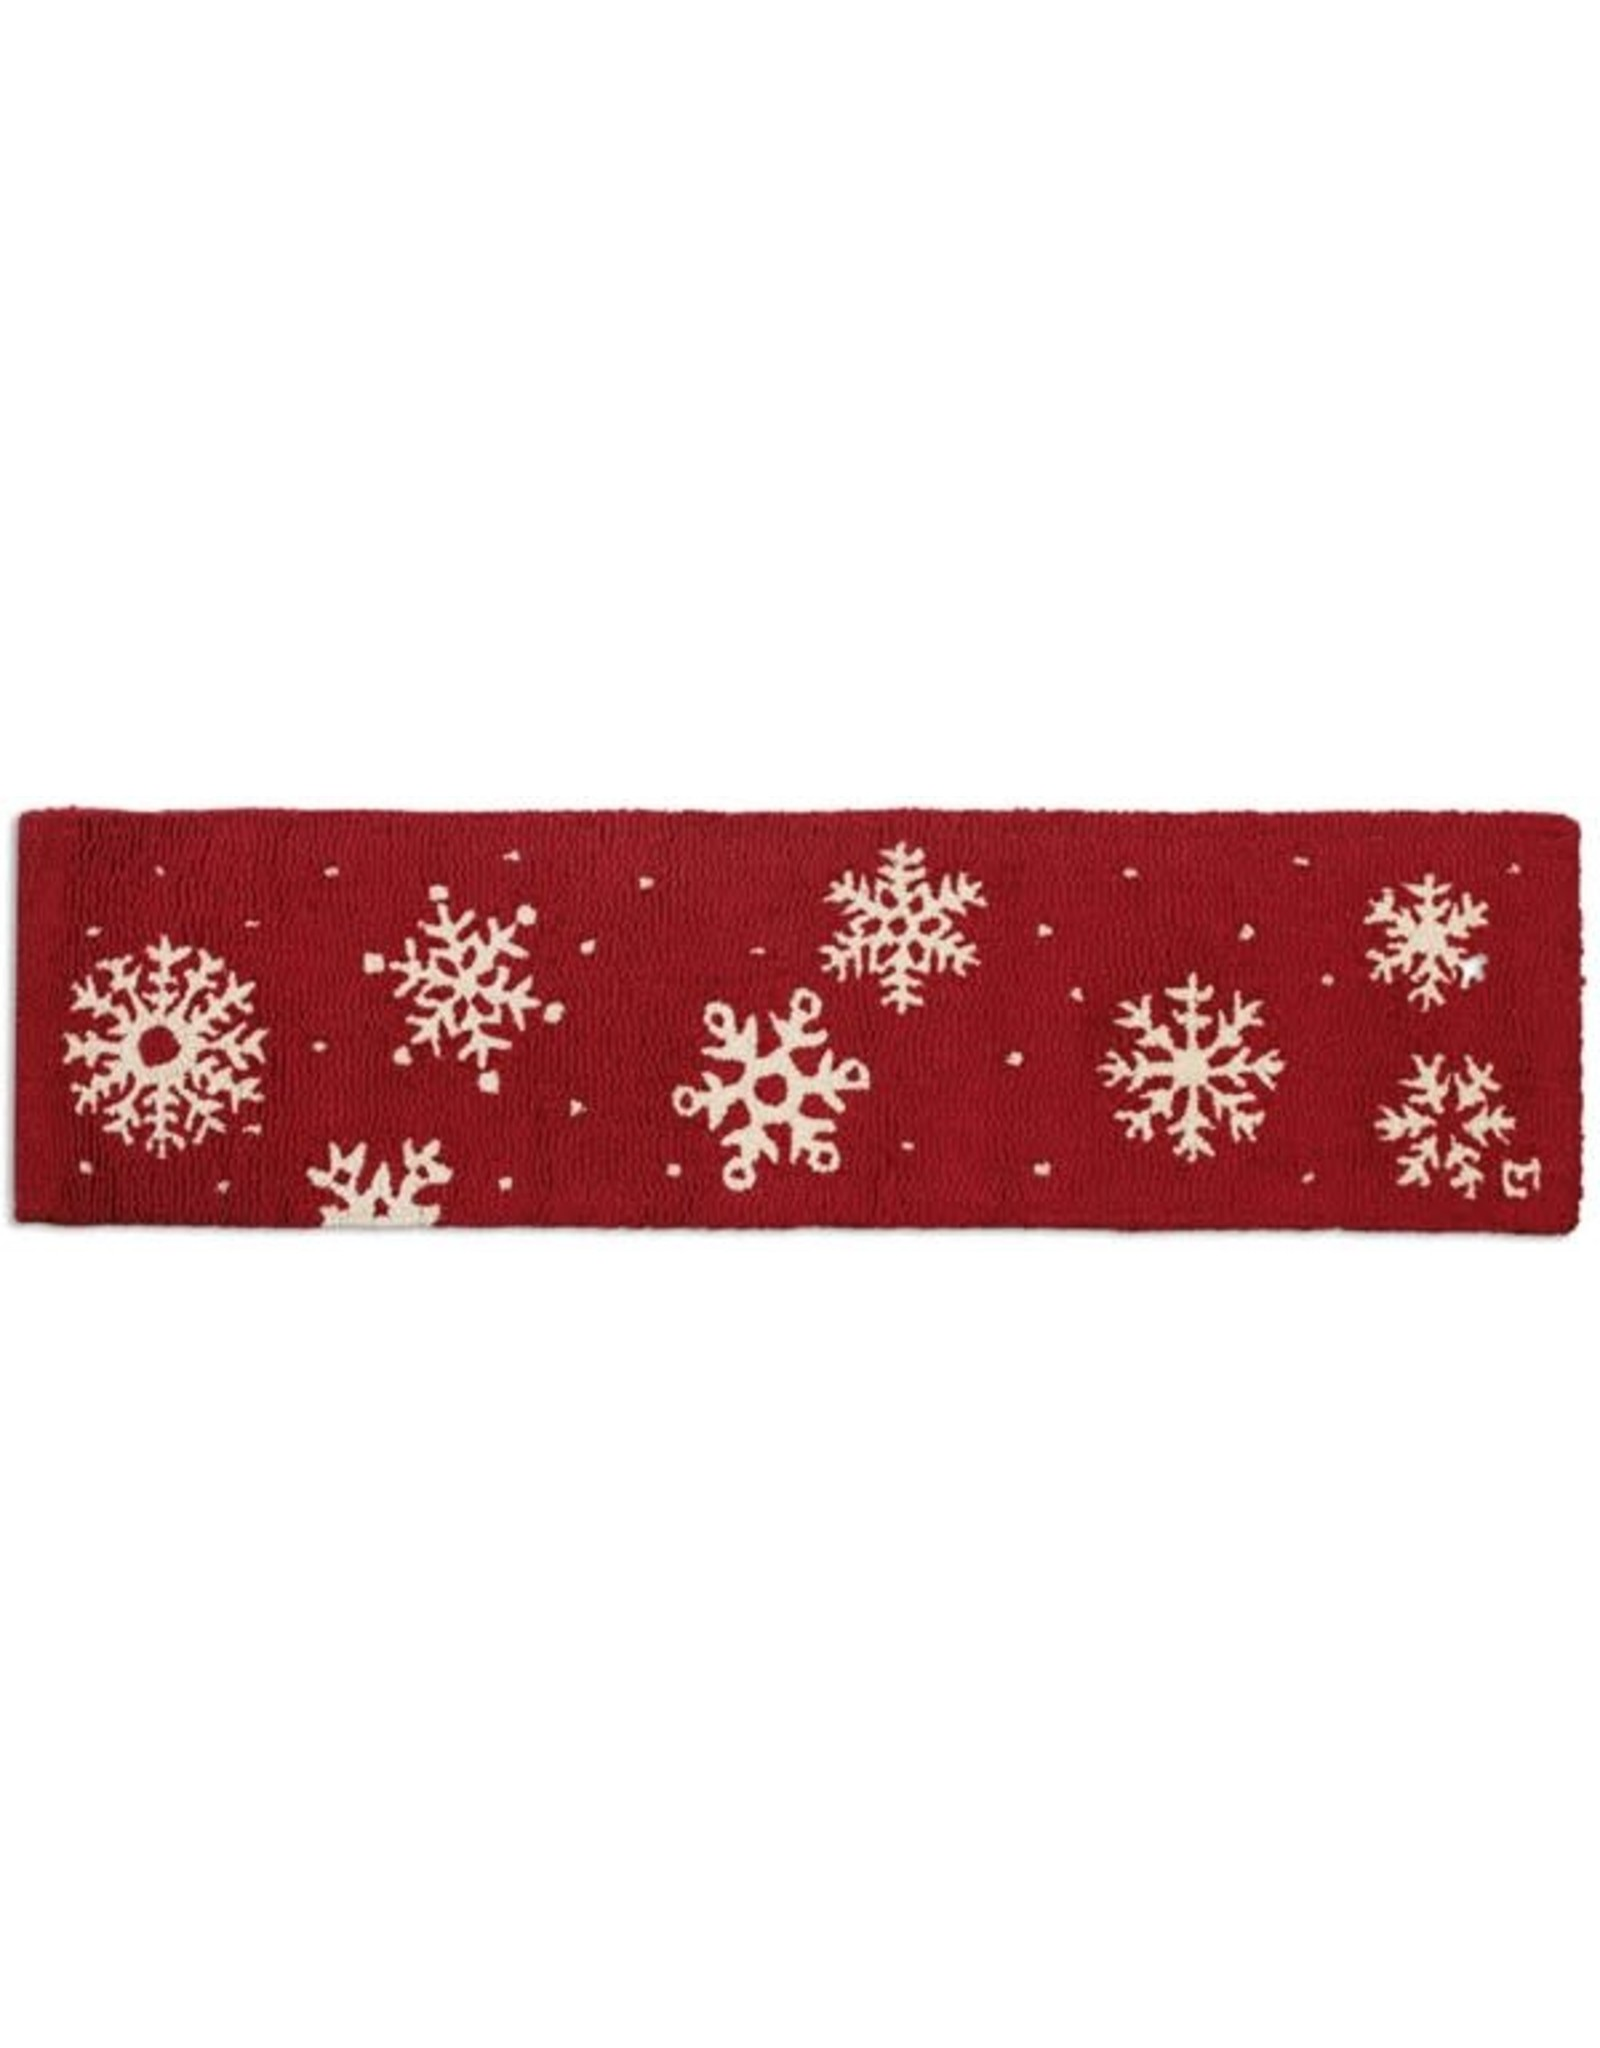 Frosty Flakes Hearth Rug 1'x4'